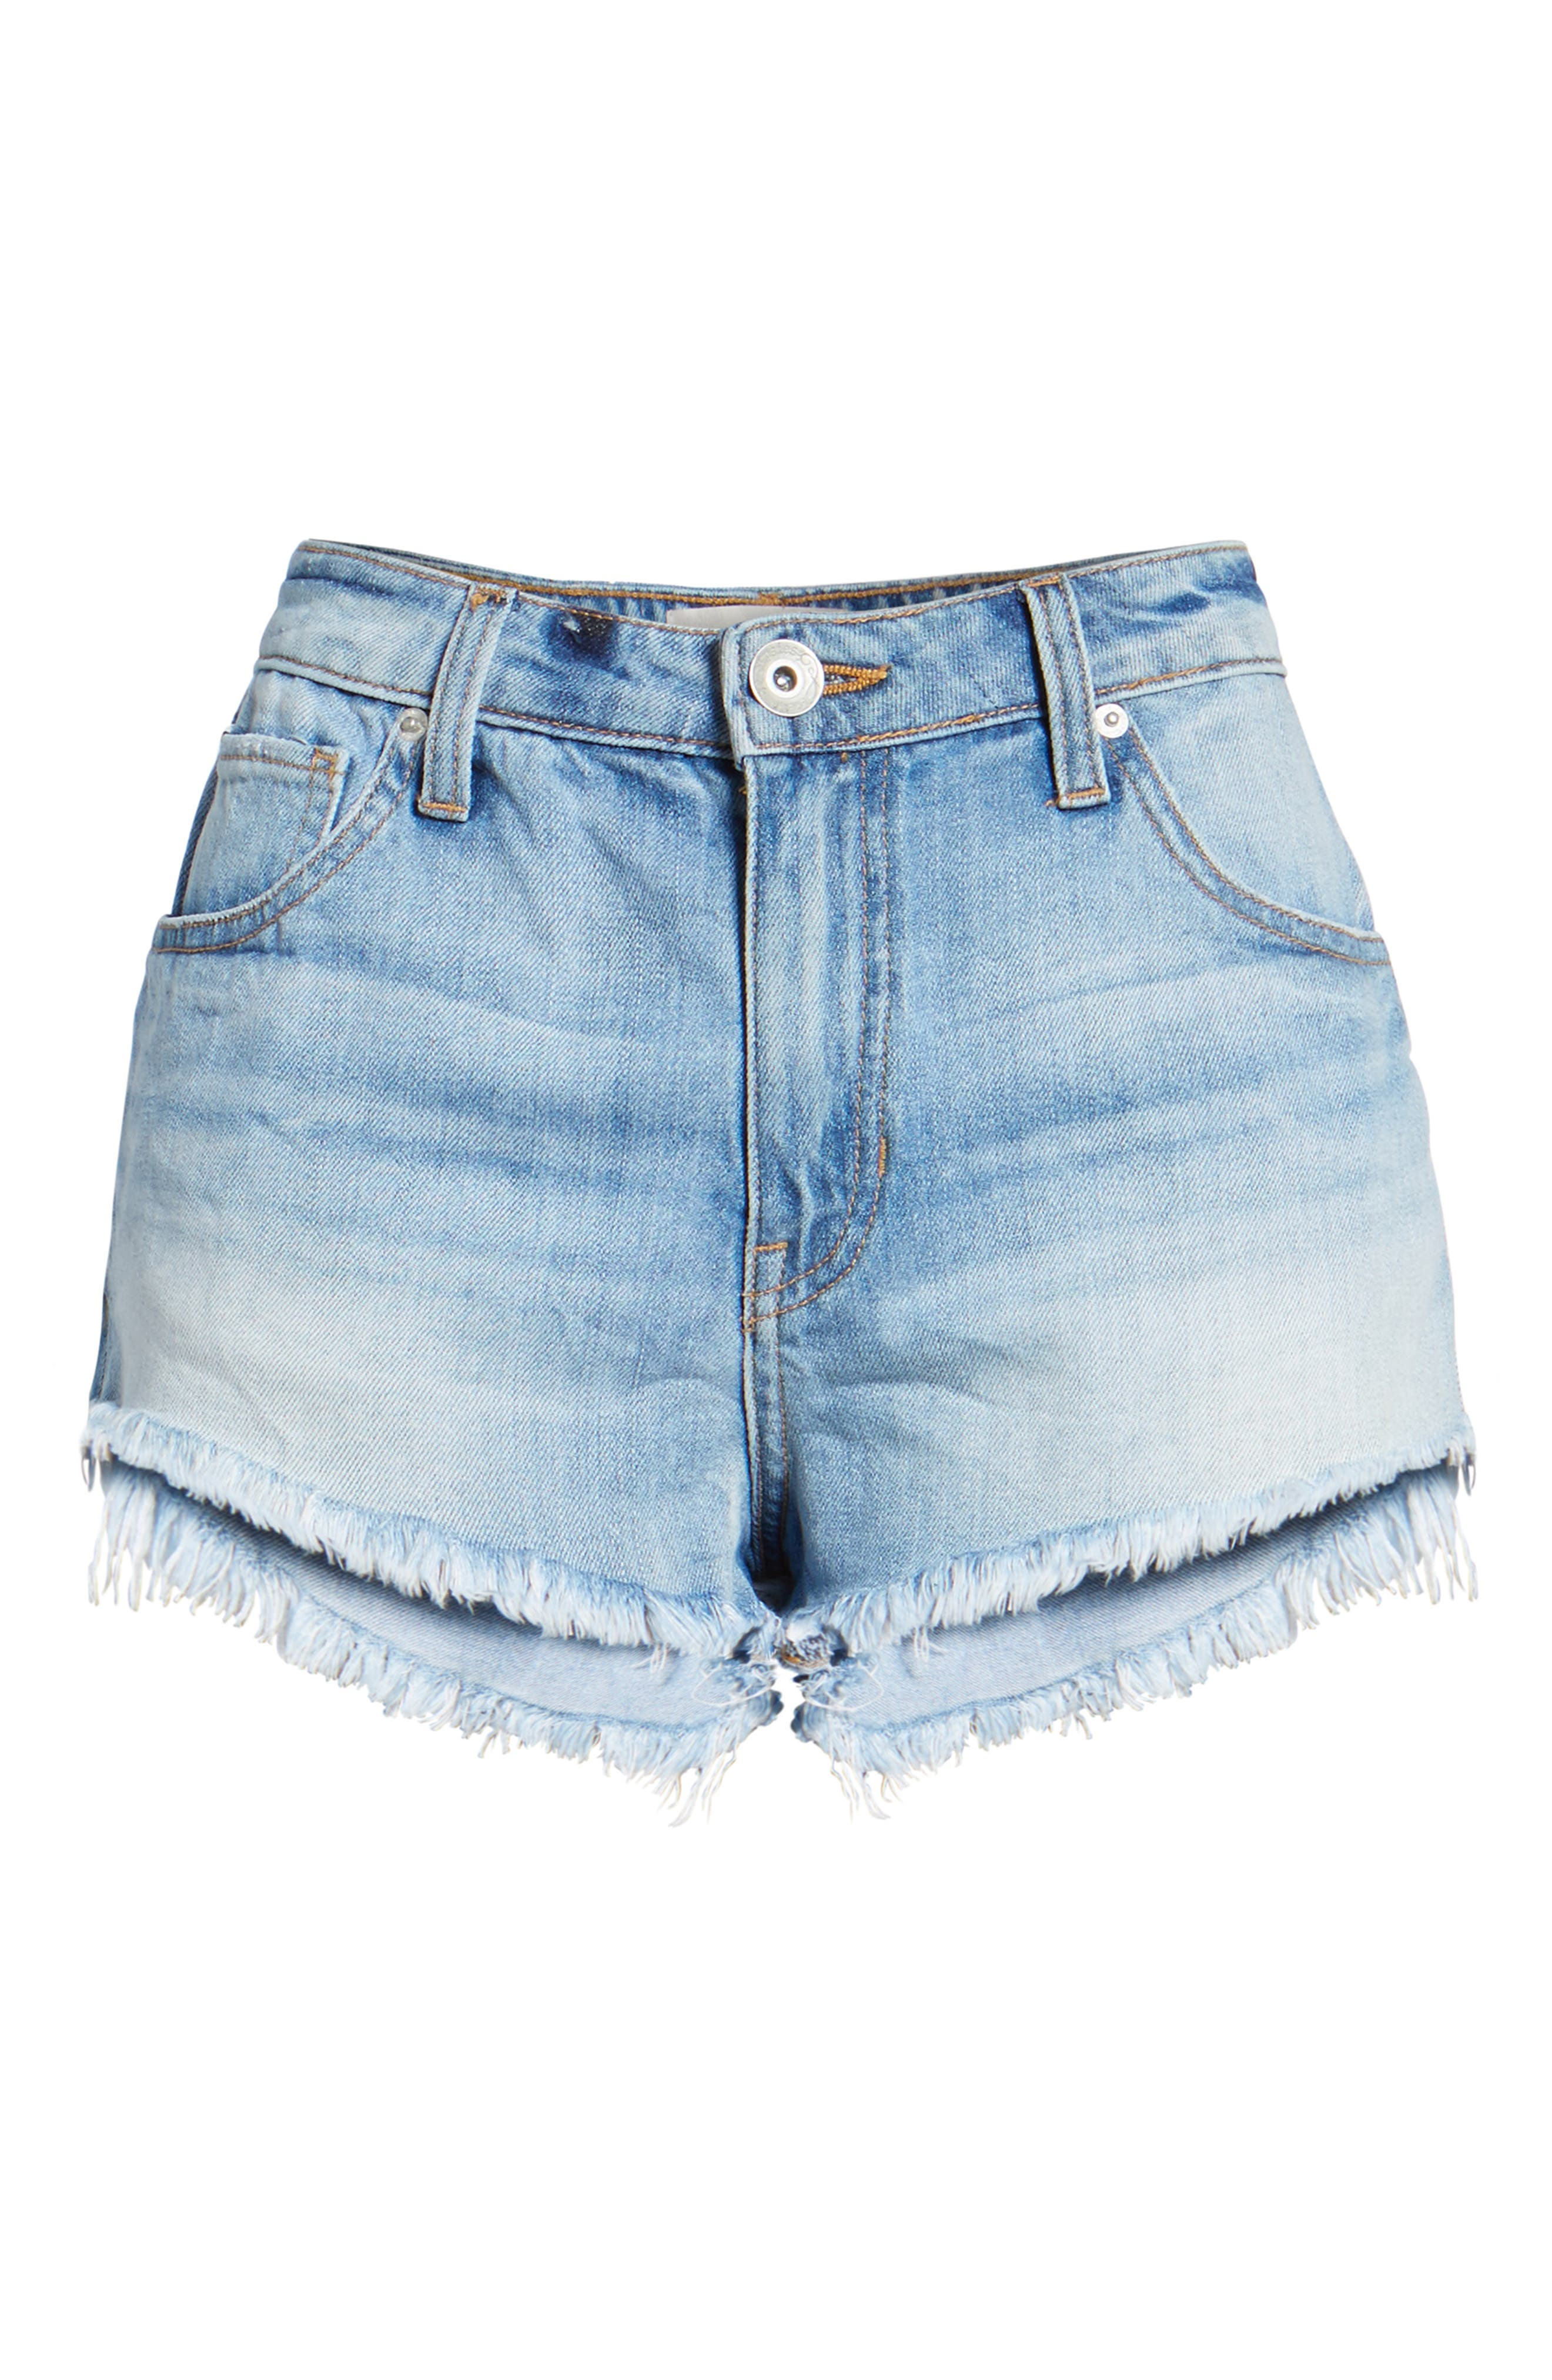 Riley Cheeky Denim Shorts,                             Alternate thumbnail 6, color,                             Blue Fest